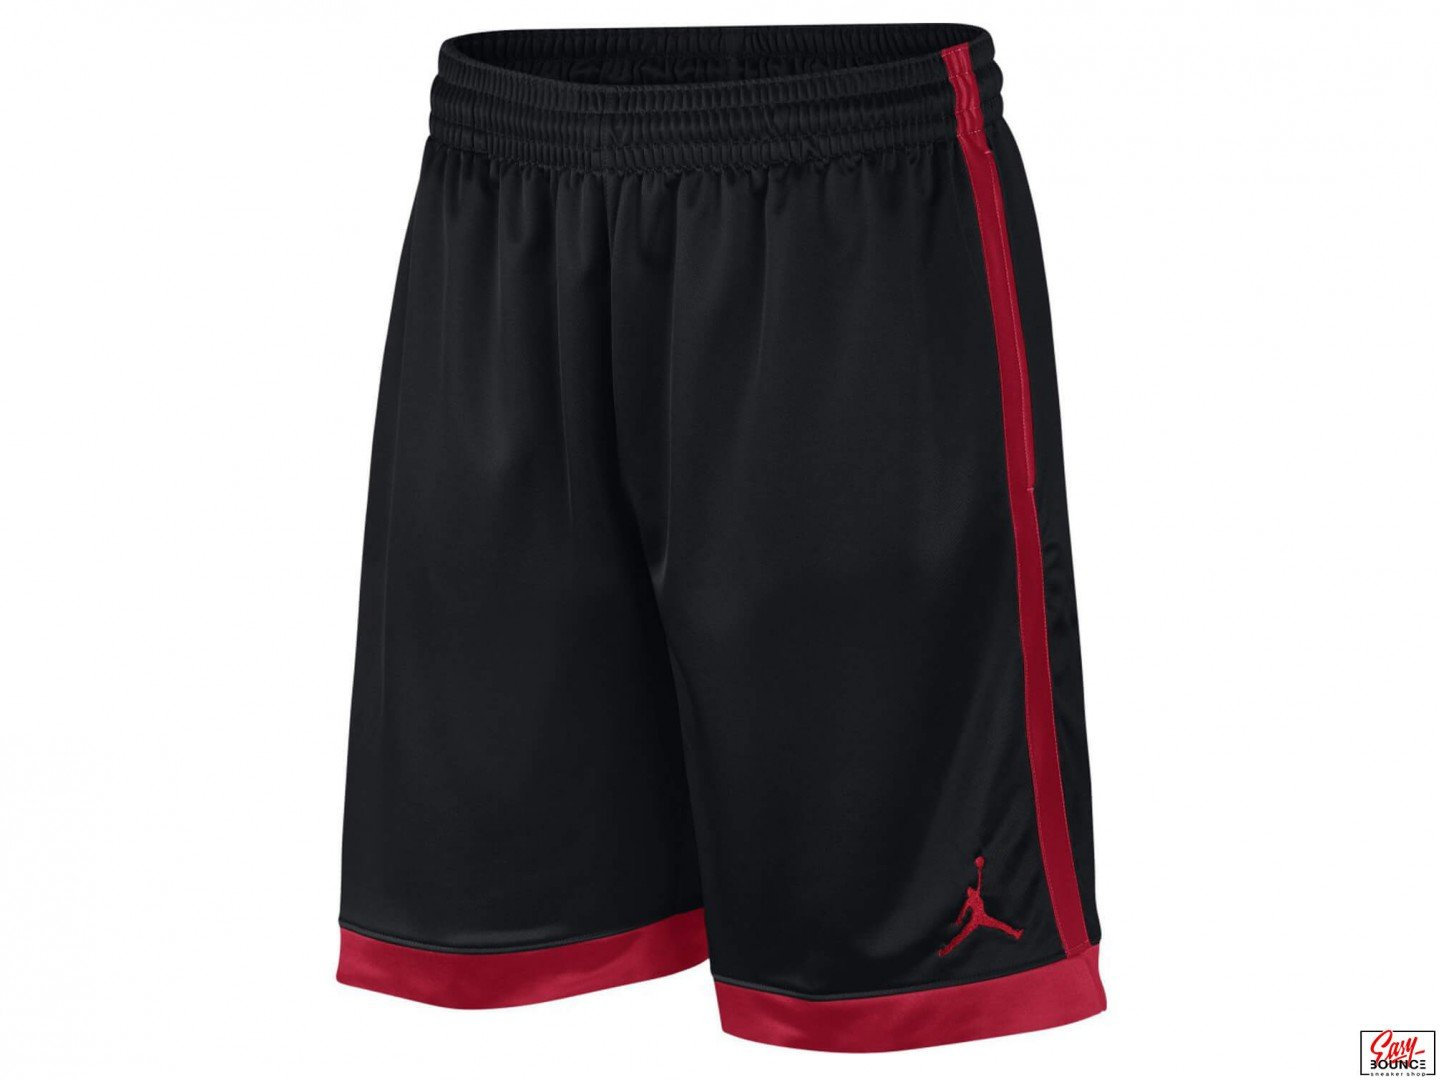 Шорты Air Jordan Shimmer Short, Black/Gym Red/Black